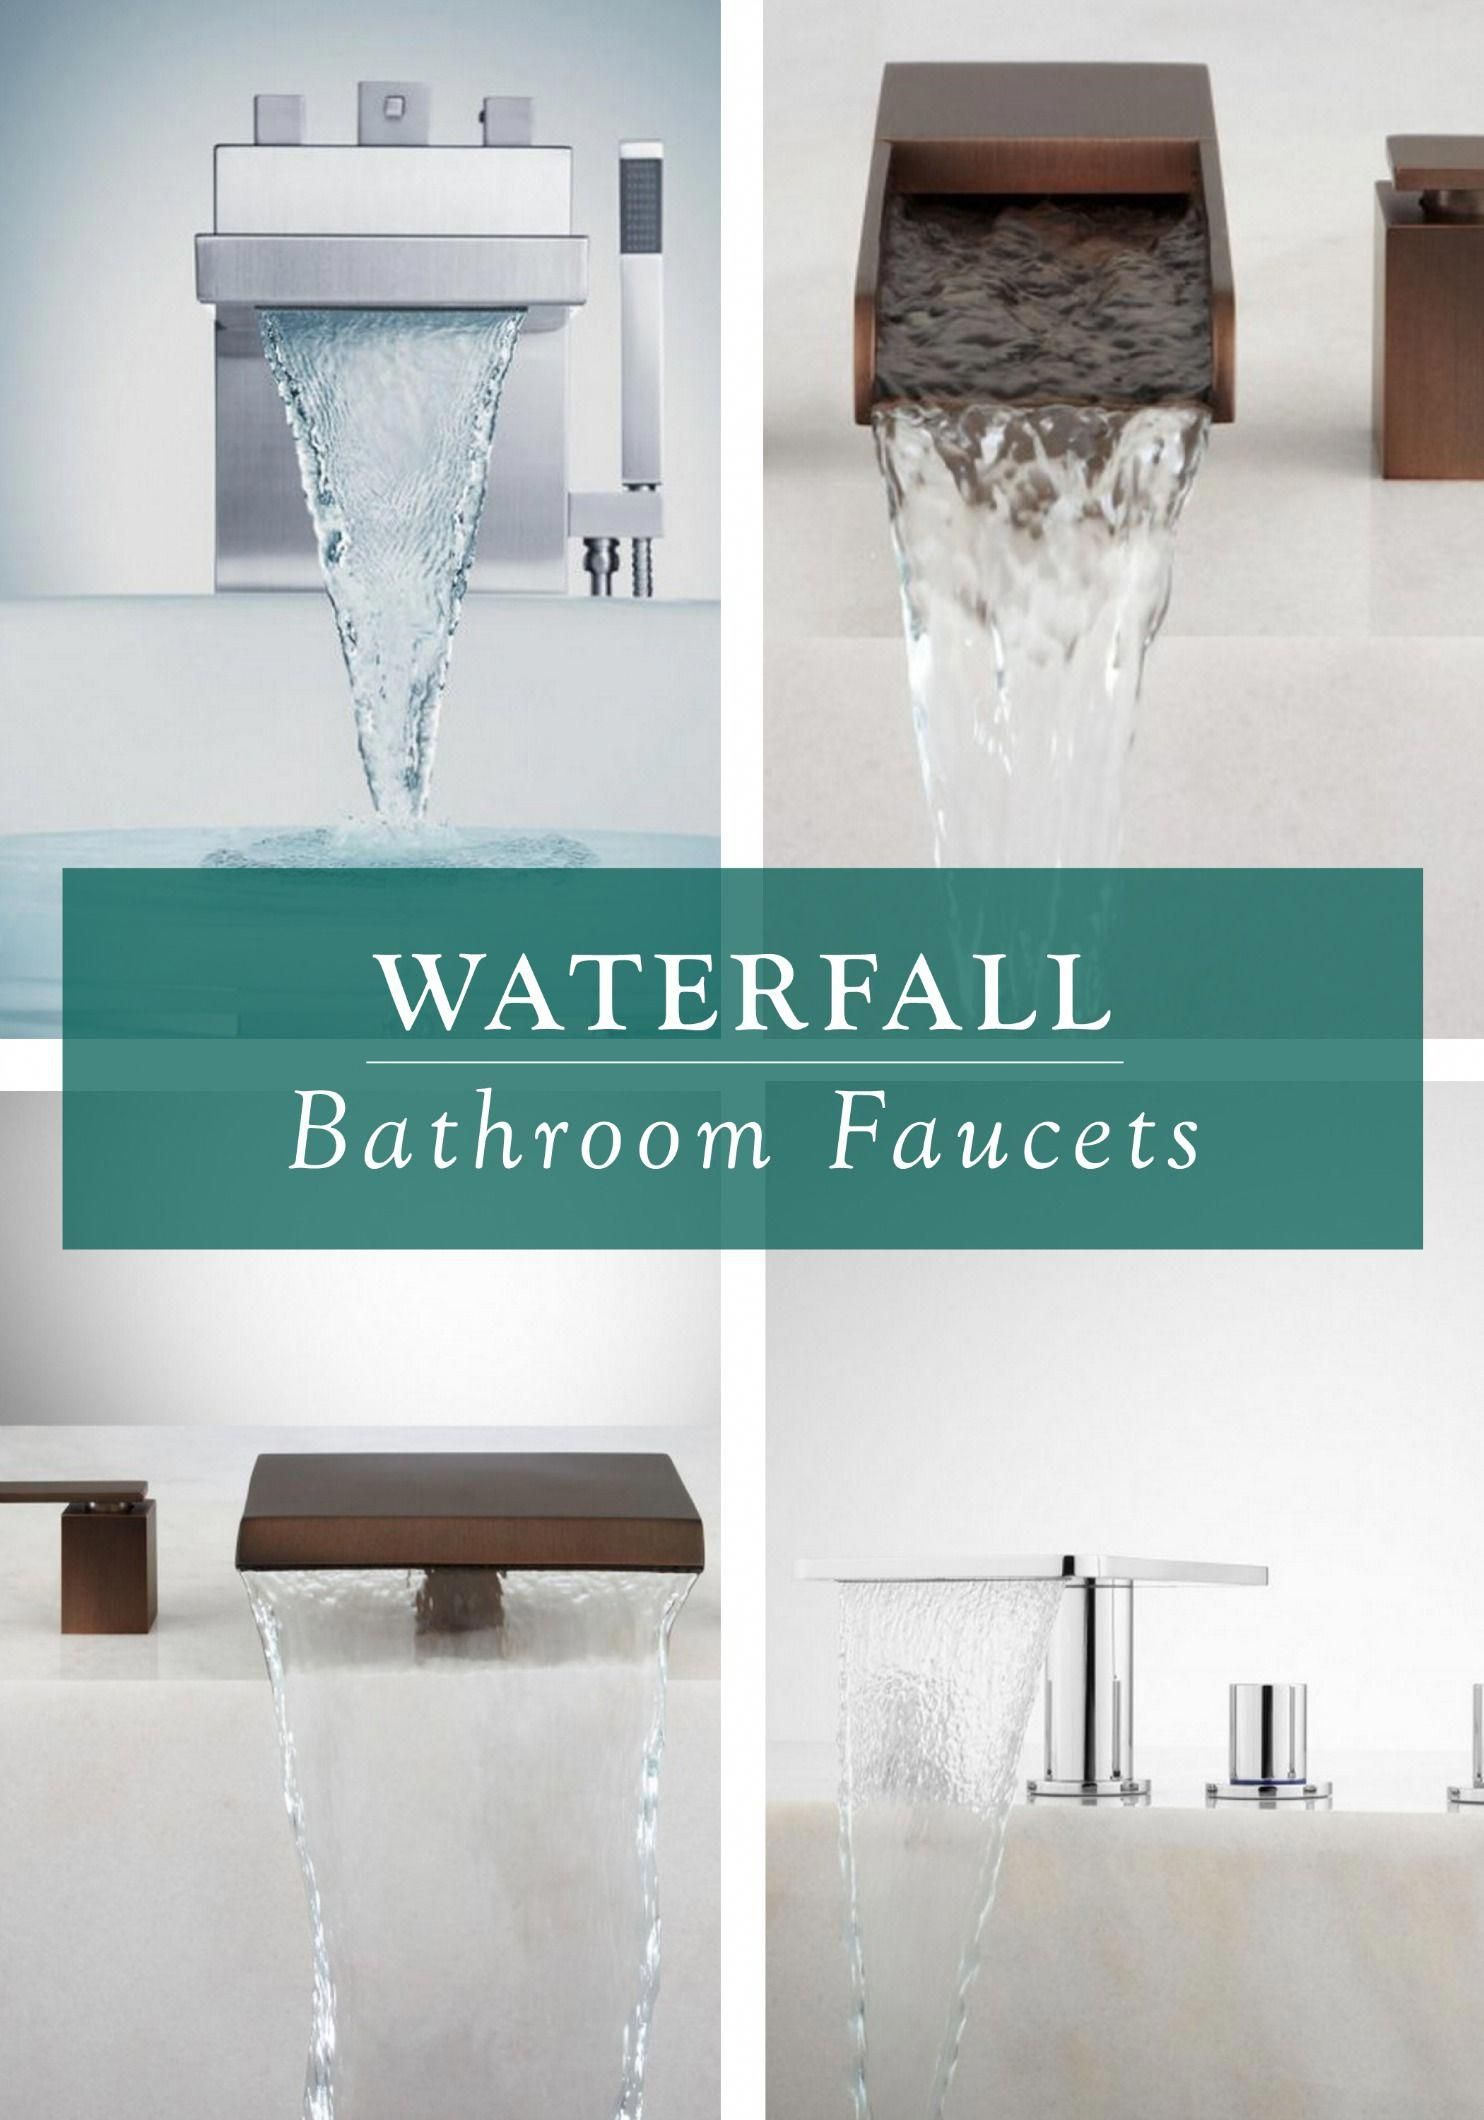 10 Good Resolutions For Toilets With Images Bathroom Faucets